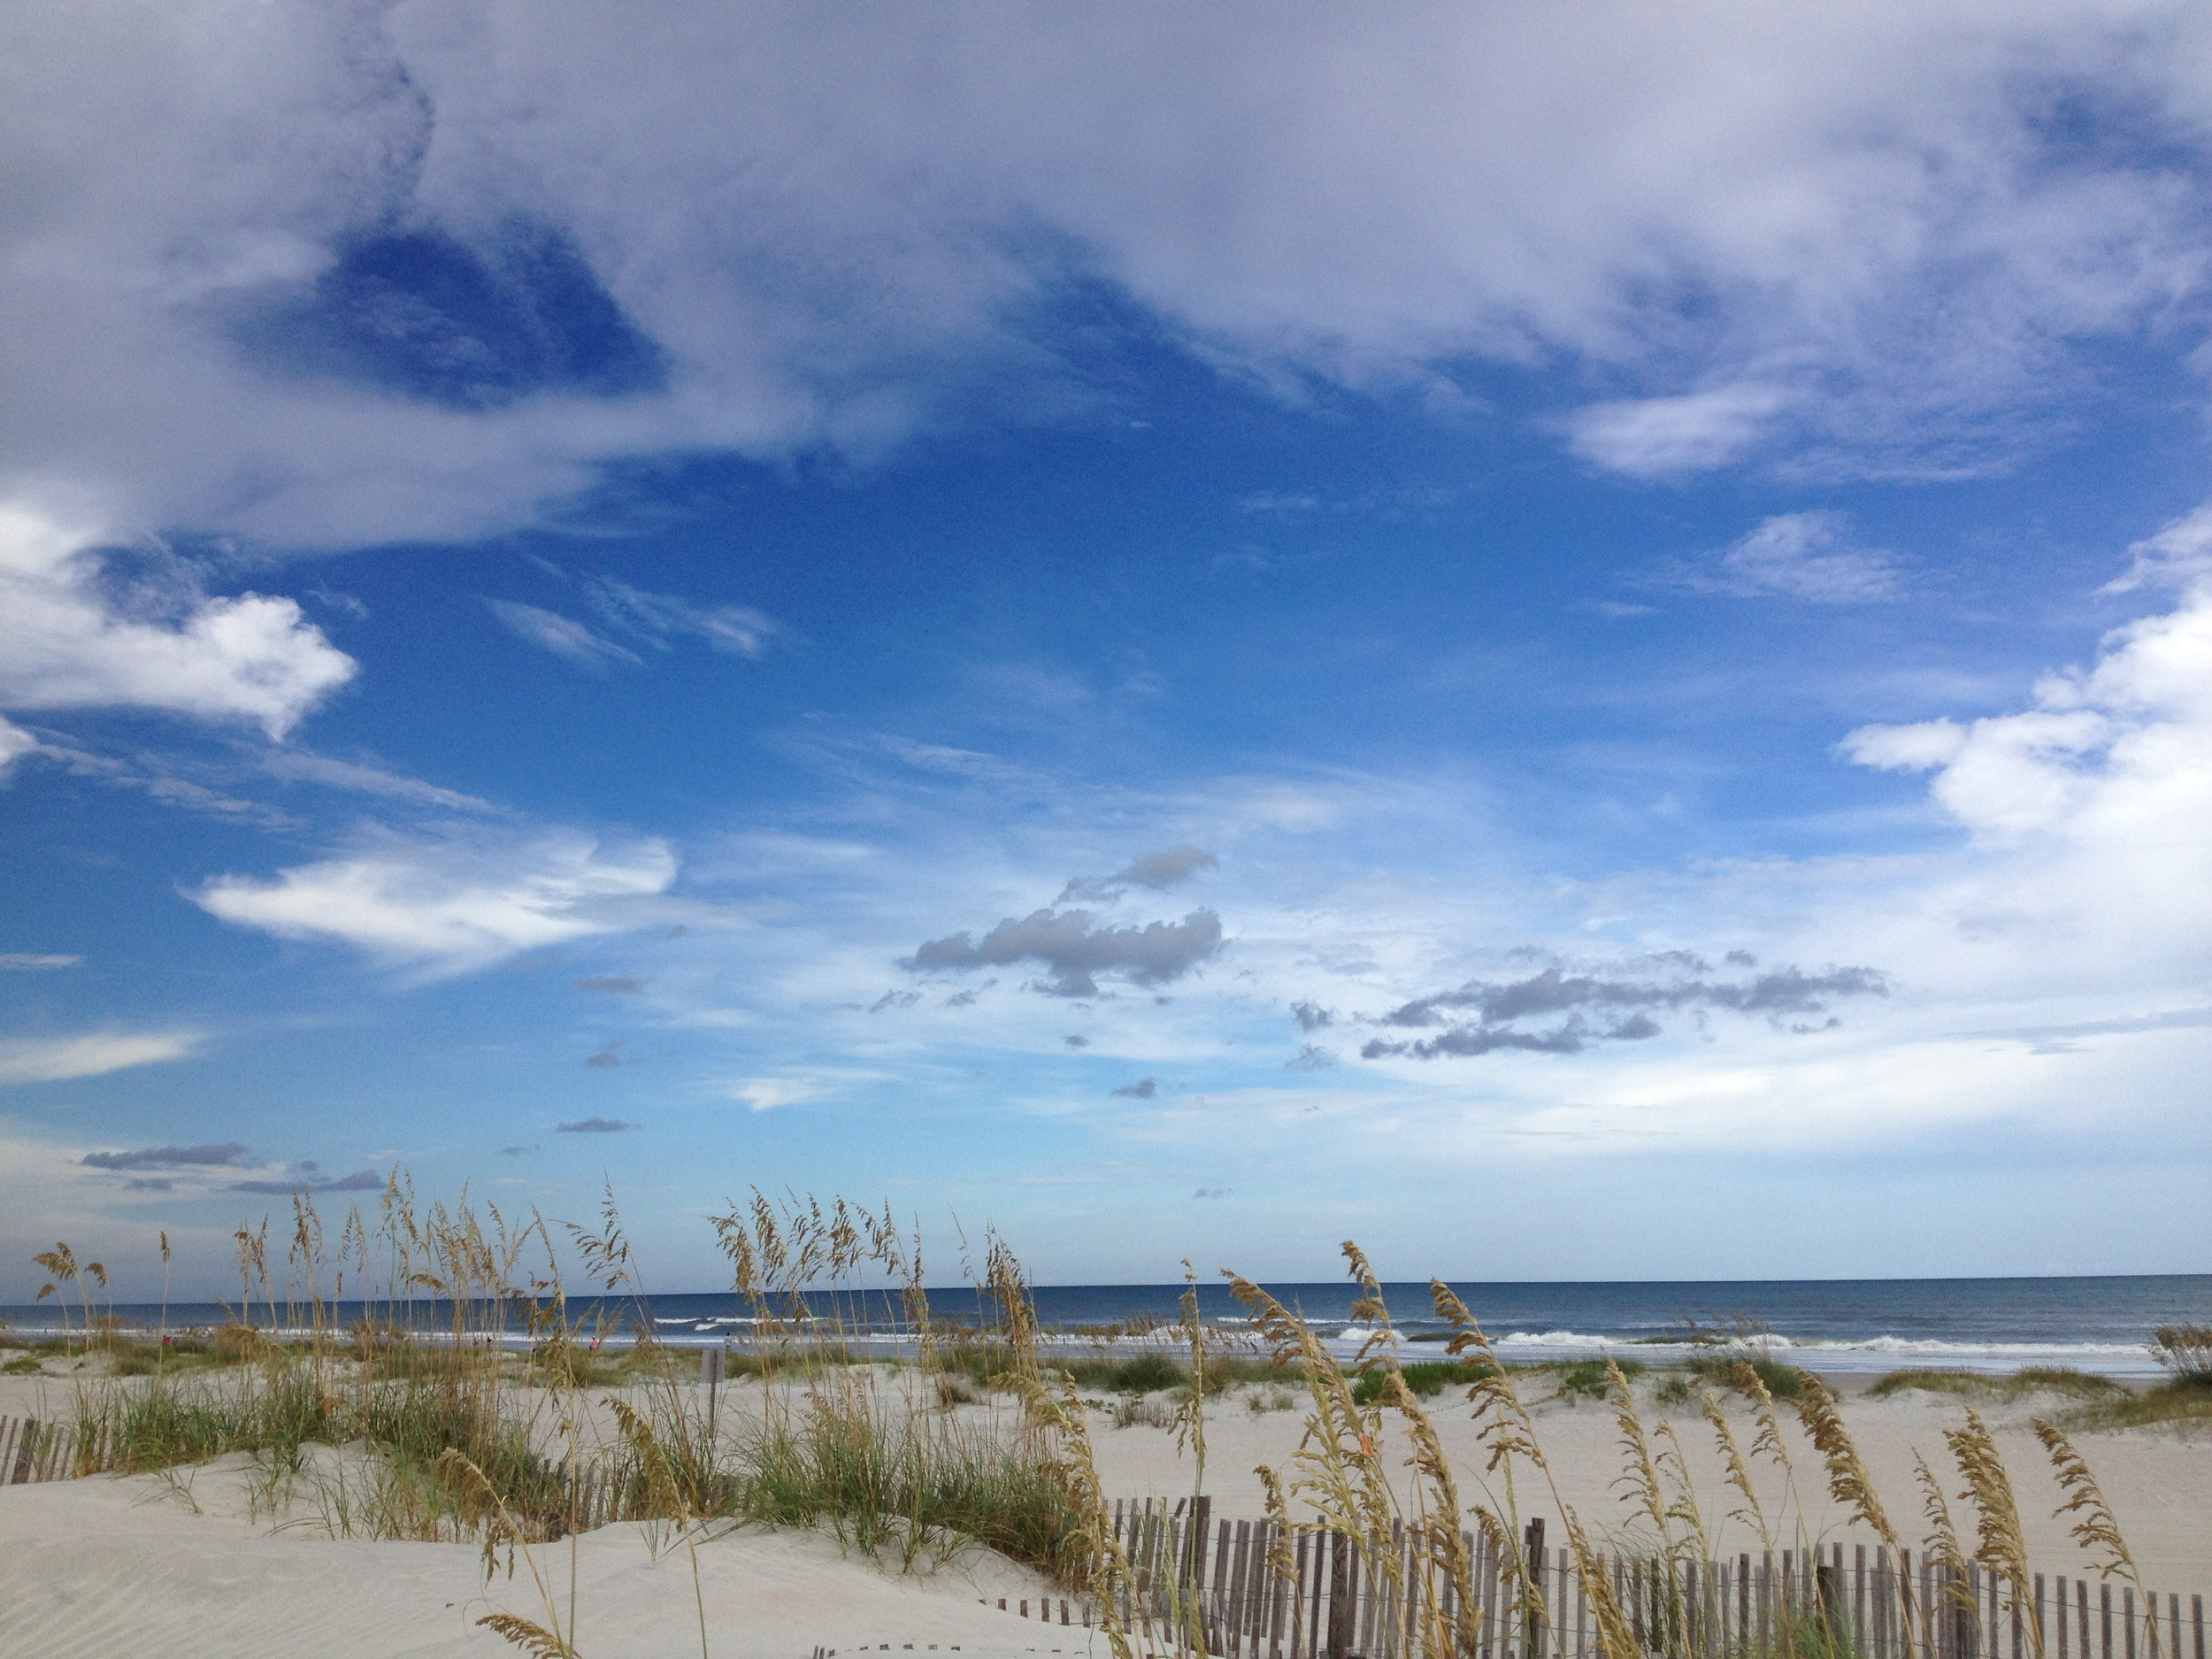 Midday at the July beach. St. Augustine 2012